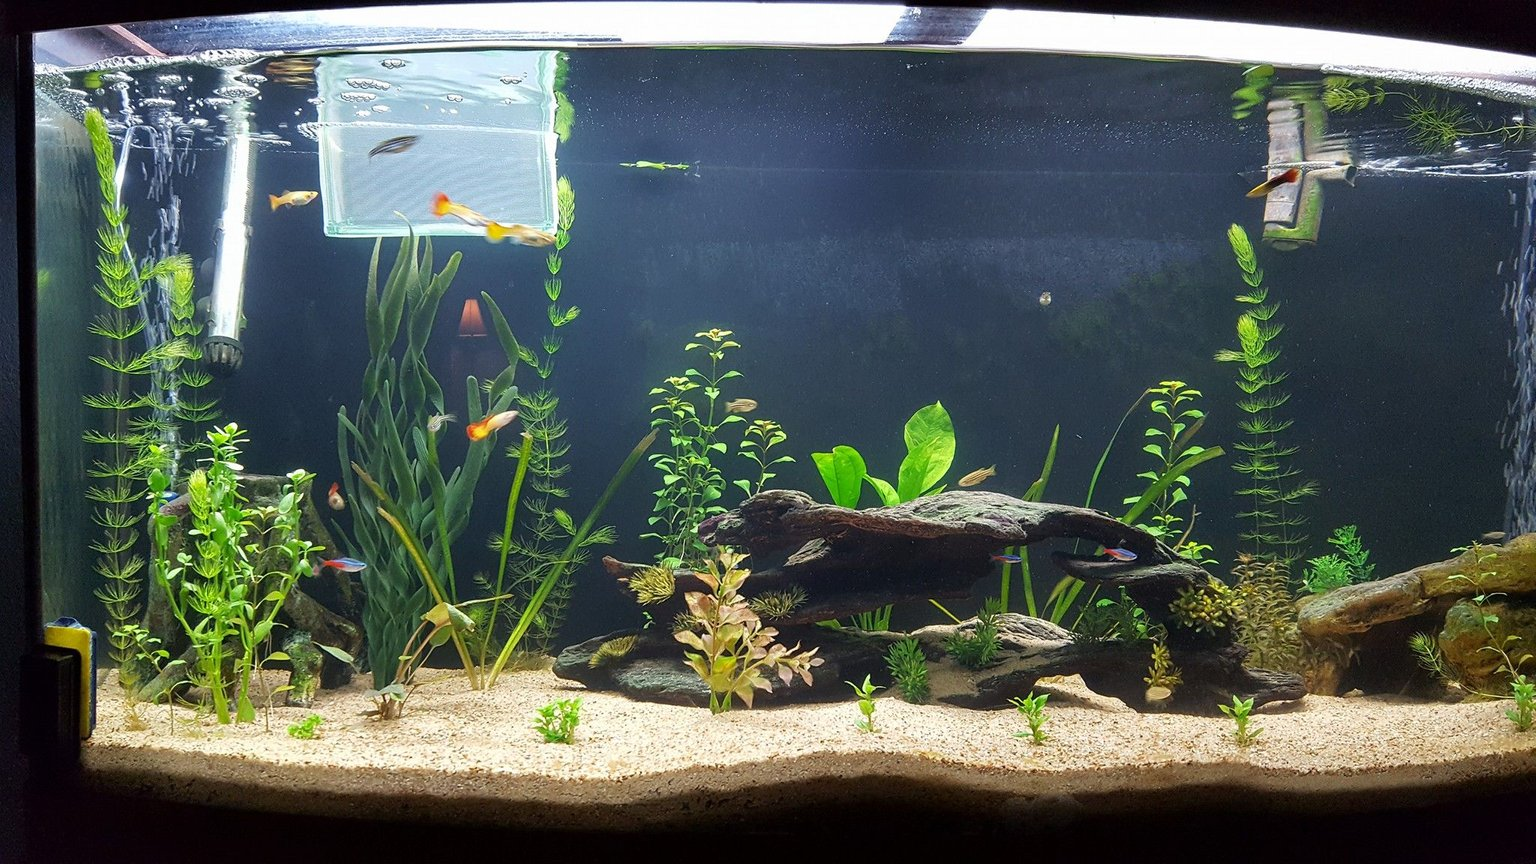 75 gallons planted tank (mostly live plants and fish) - So I'm new to planted aquariums, got this aquarium on the cheap, and went for it. I kept fish when I was younger, but I'm just now getting back into the hobby. the first pic was a couple weeks ago, and the second was a couple days ago. The hornwort and moneywart are doing great, but the anubias looks like kinda weak. I did fertilizer with osmocote root tabs, but beyond that, pretty unsure what to do the liven it up. Suggestions?